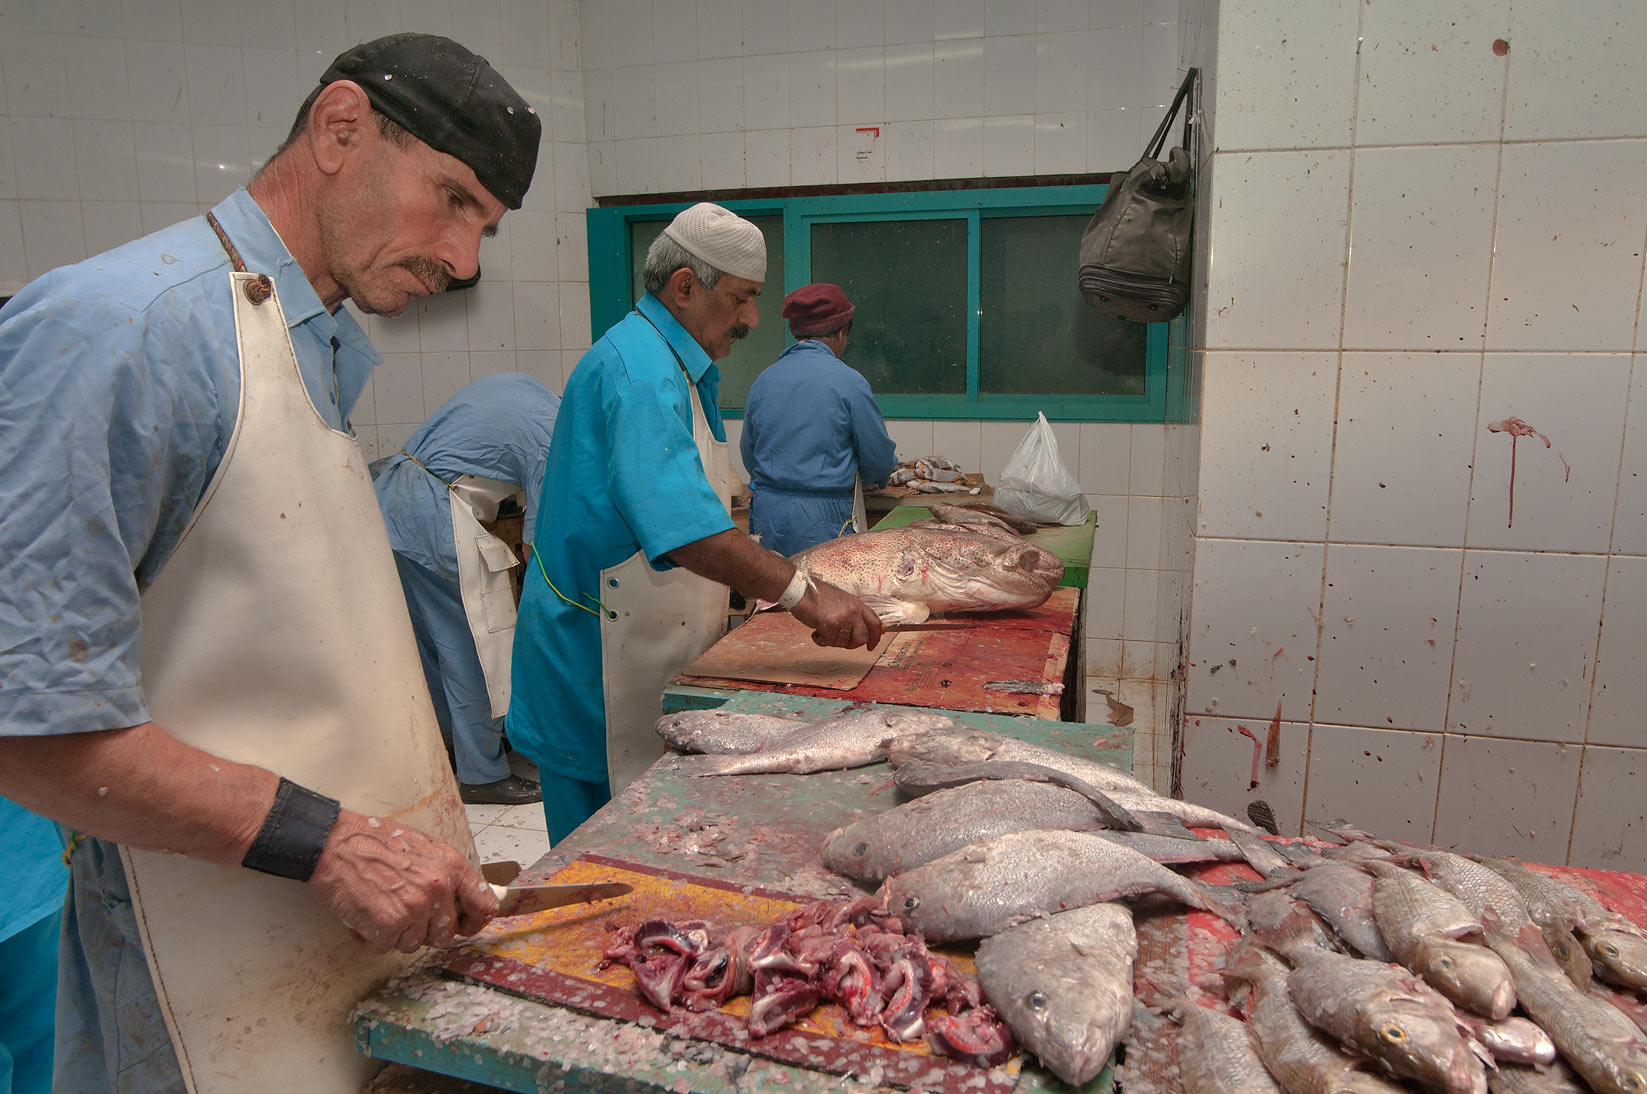 Workers cleaning fish in Central Fish Market. Doha, Qatar